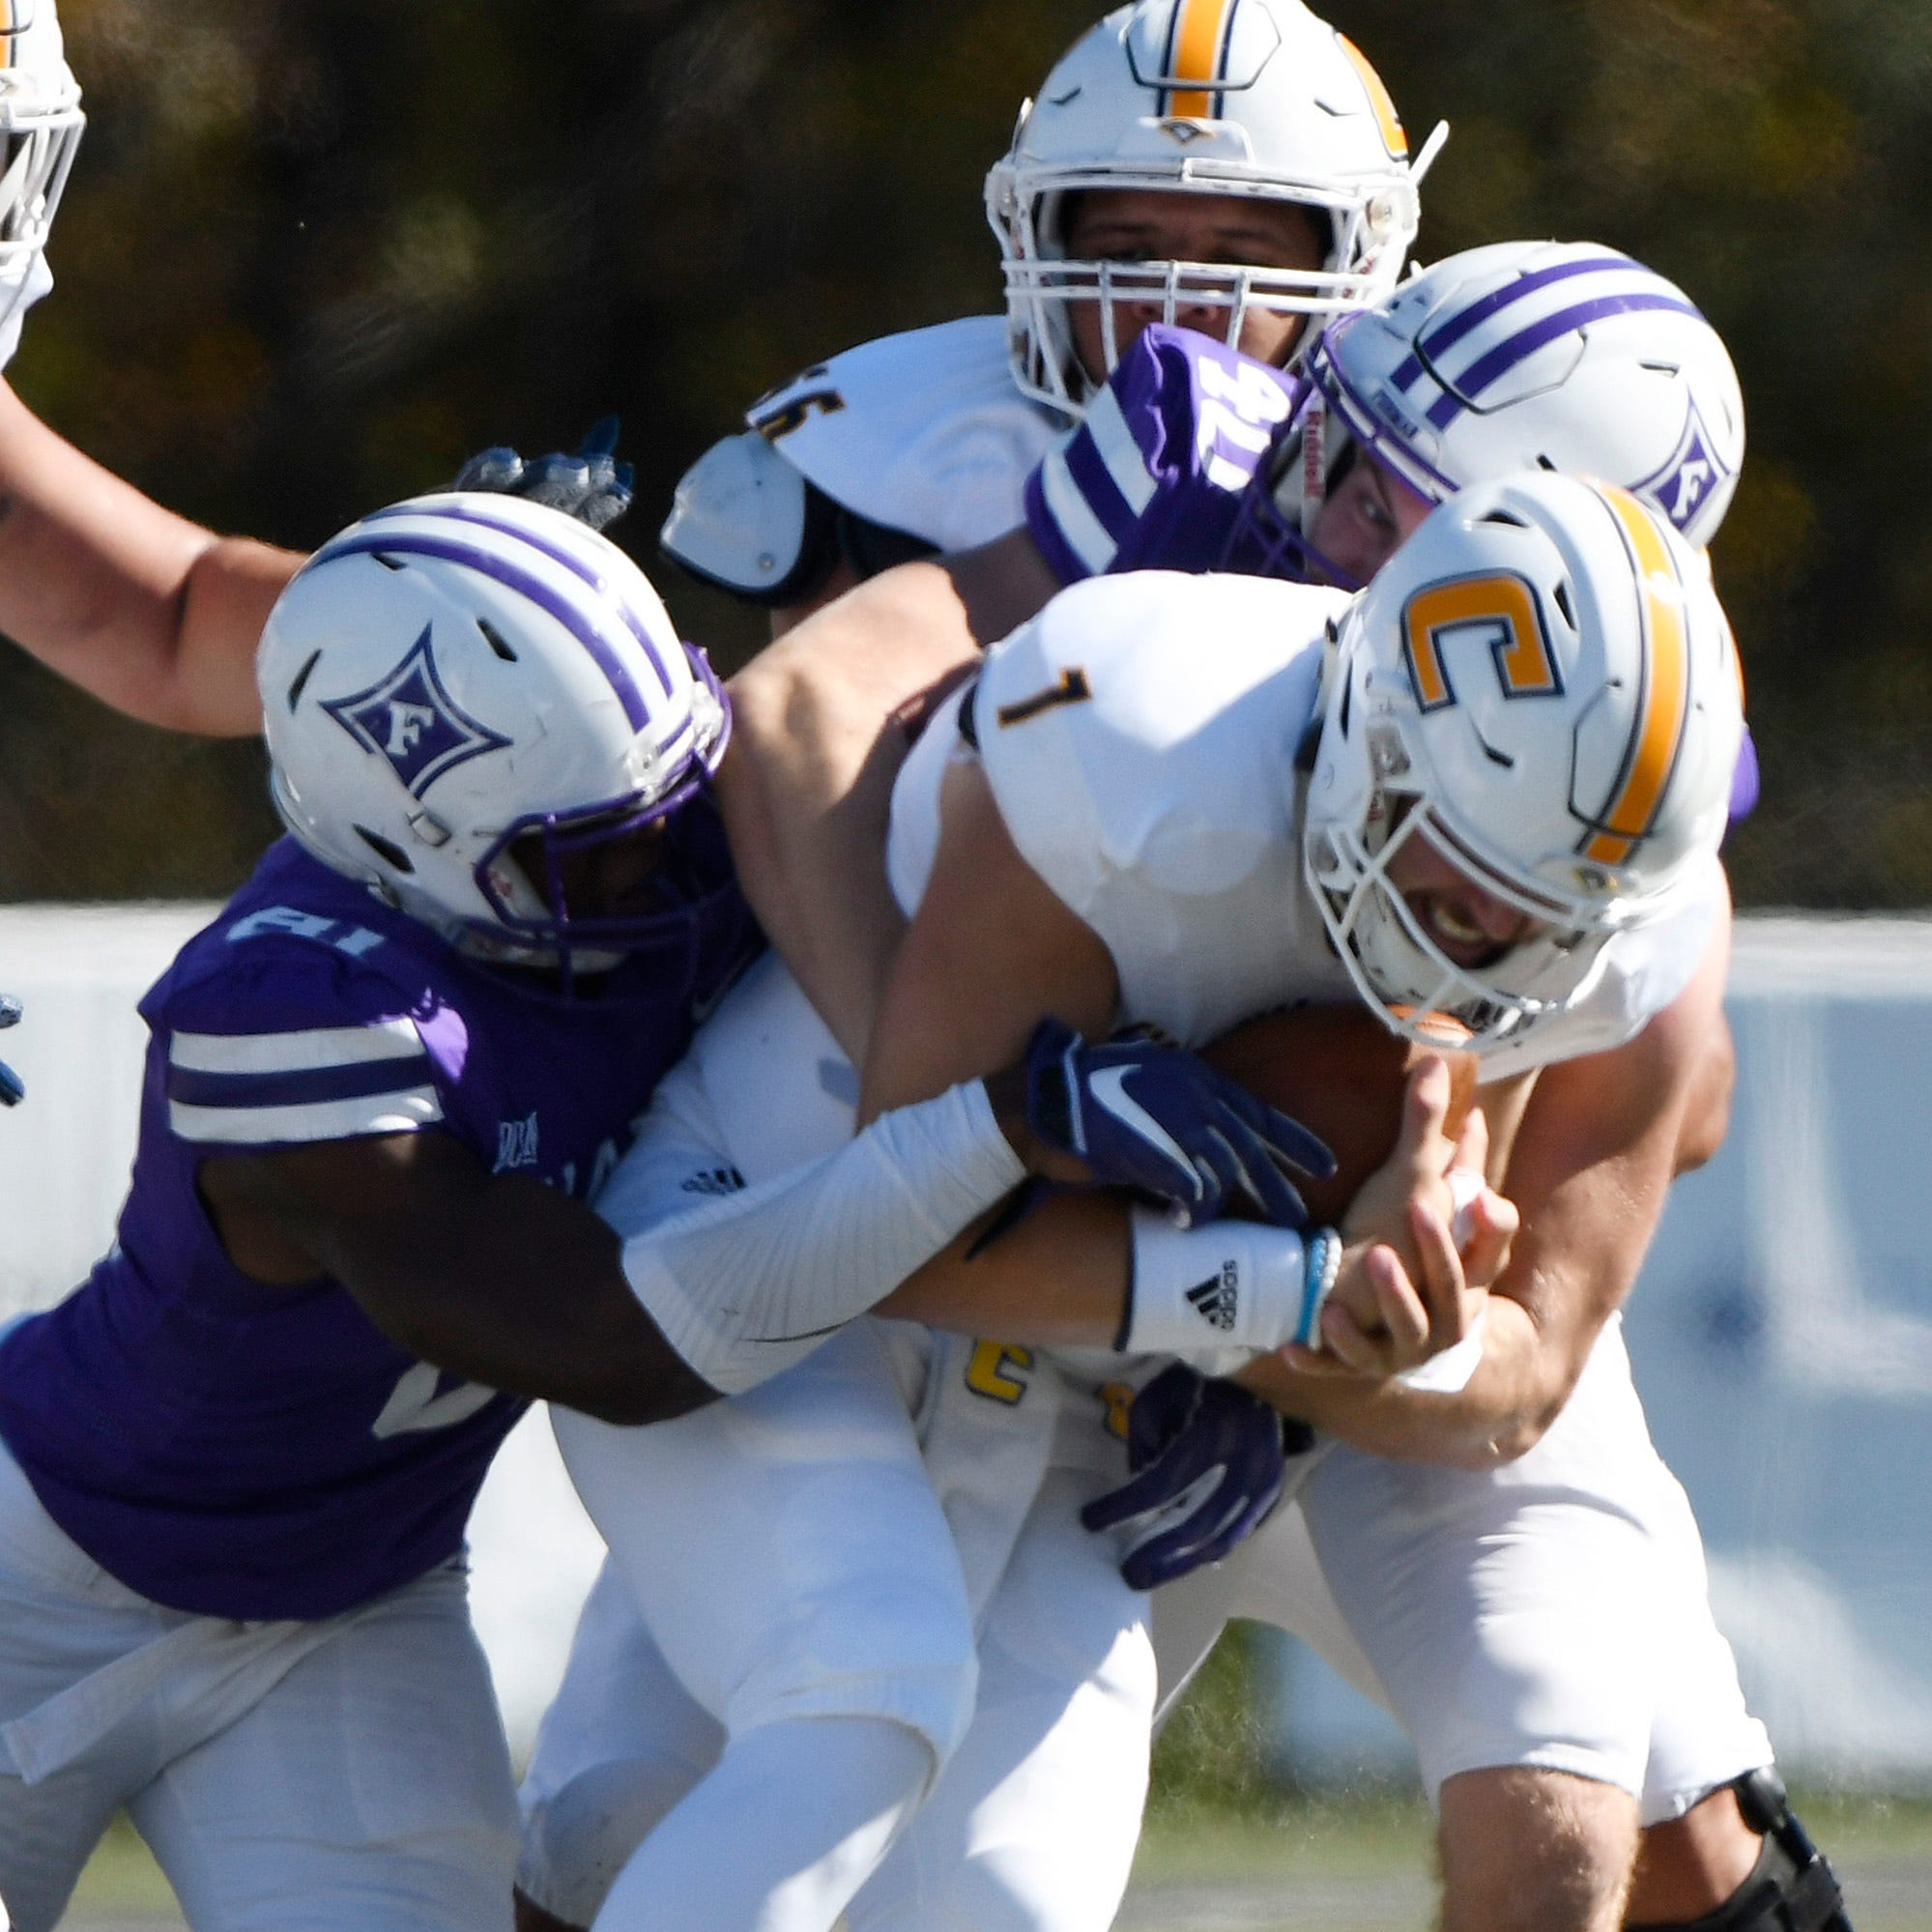 Furman football coach Clay Hendrix calls playoff exclusion 'shocking'